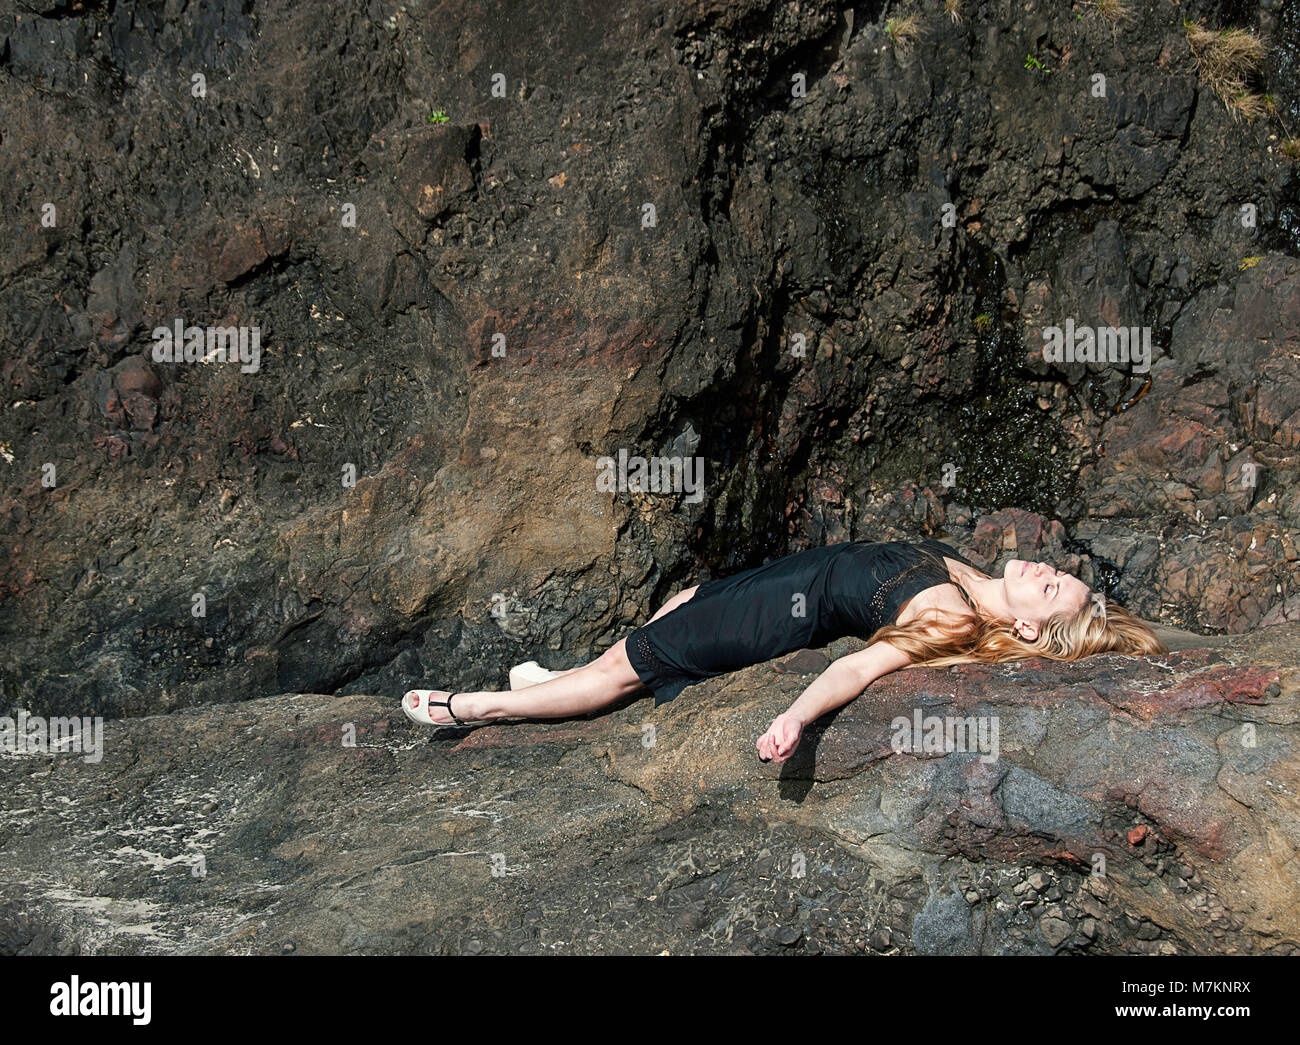 A woman laying down on a coastal rock wearing high heels. - Stock Image